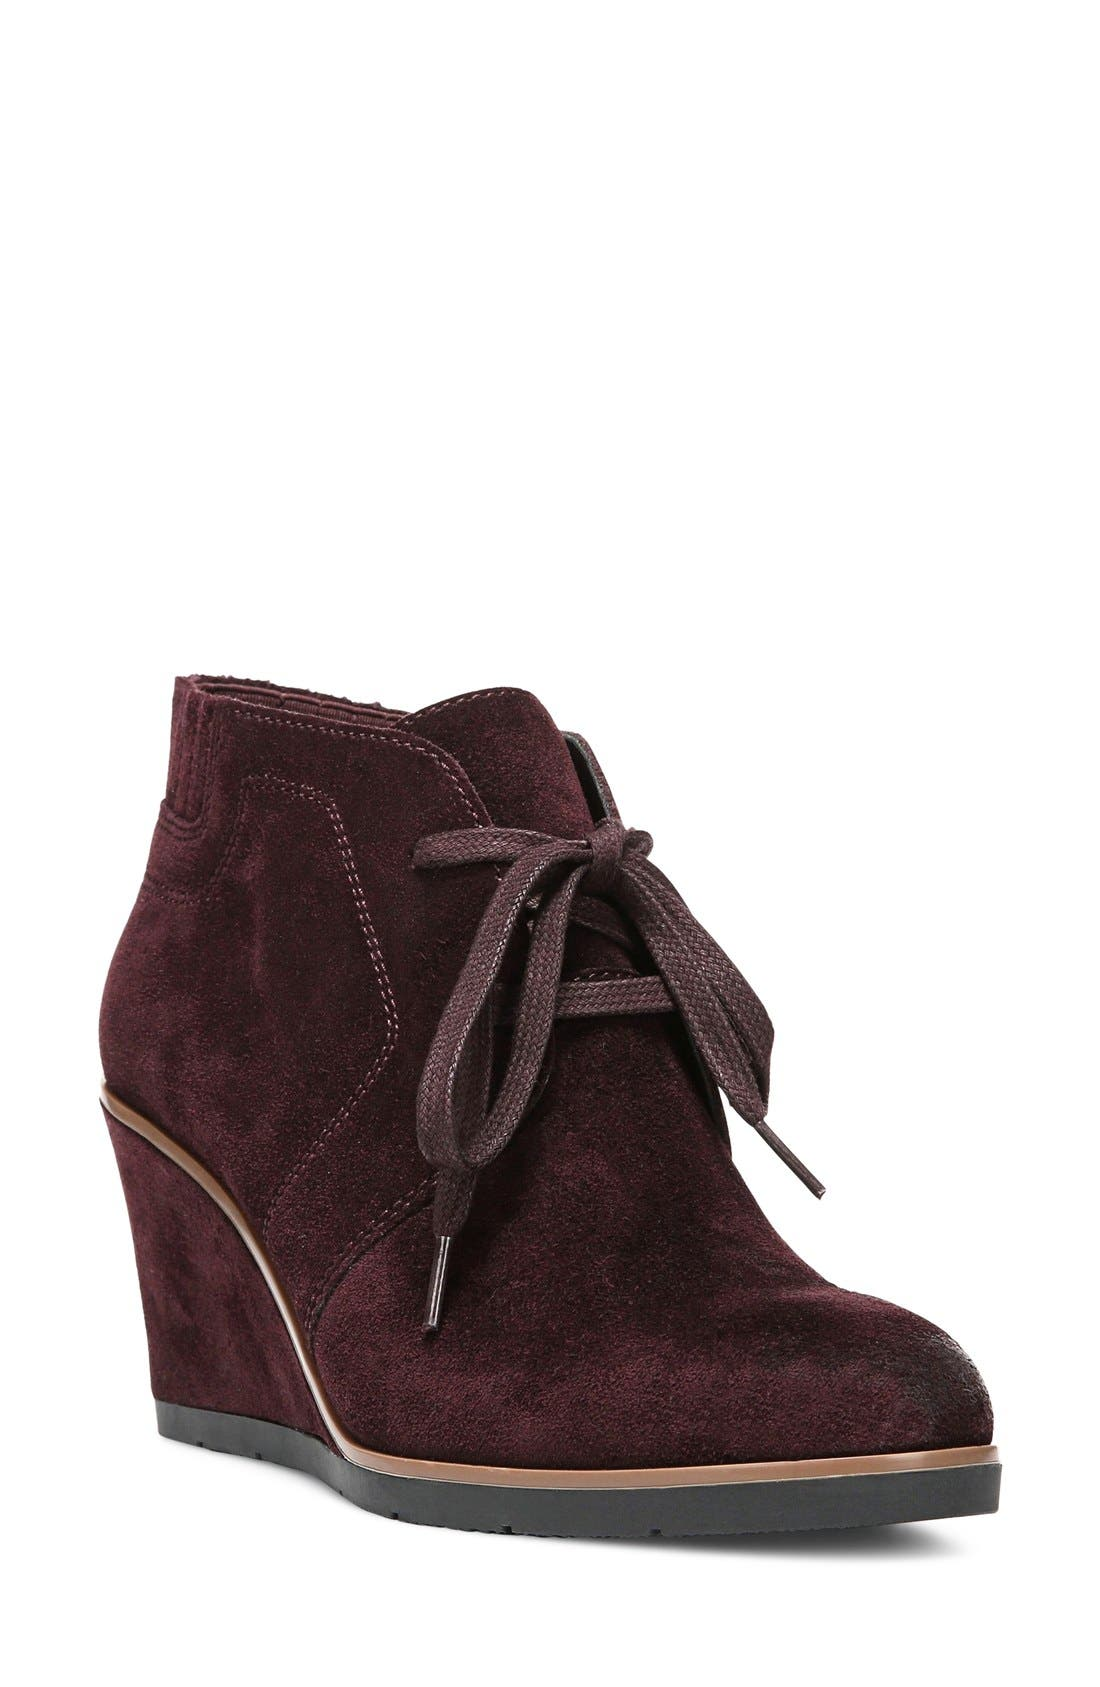 Alternate Image 1 Selected - Franco Sarto 'Austine' Lace Up Wedge Bootie (Women)